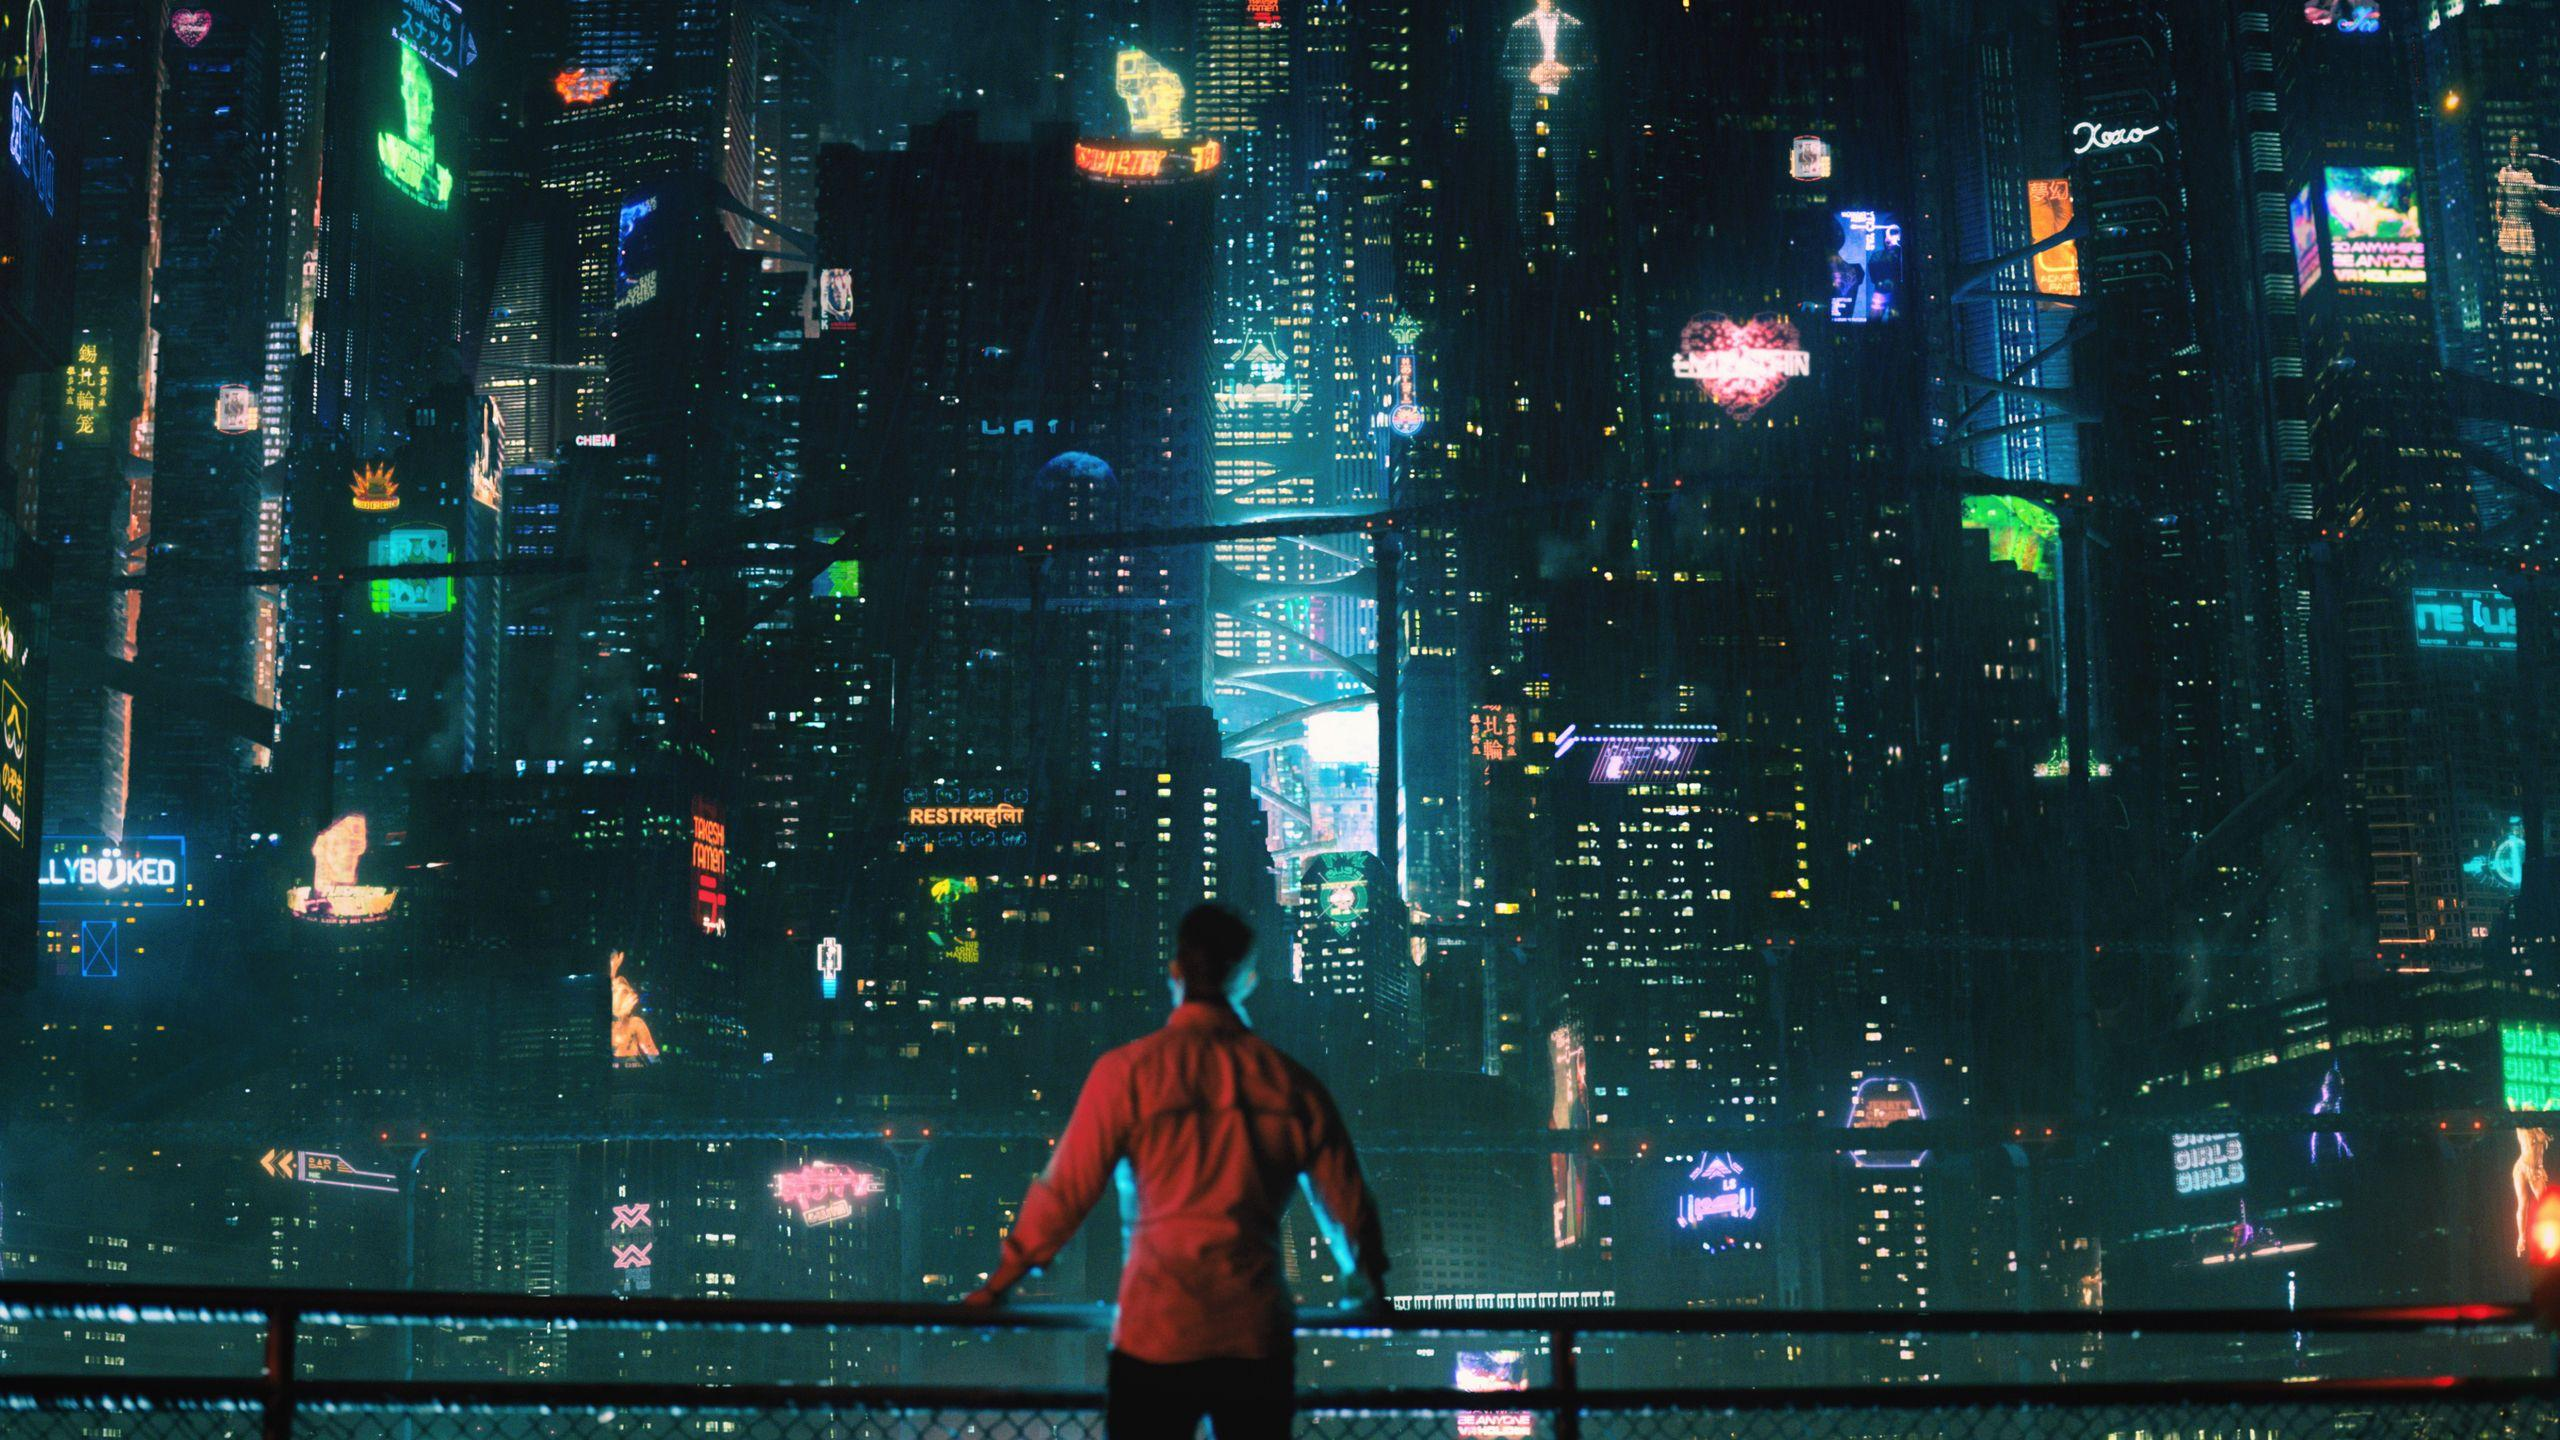 Altered Carbon Wallpapers Wallpaper Cave